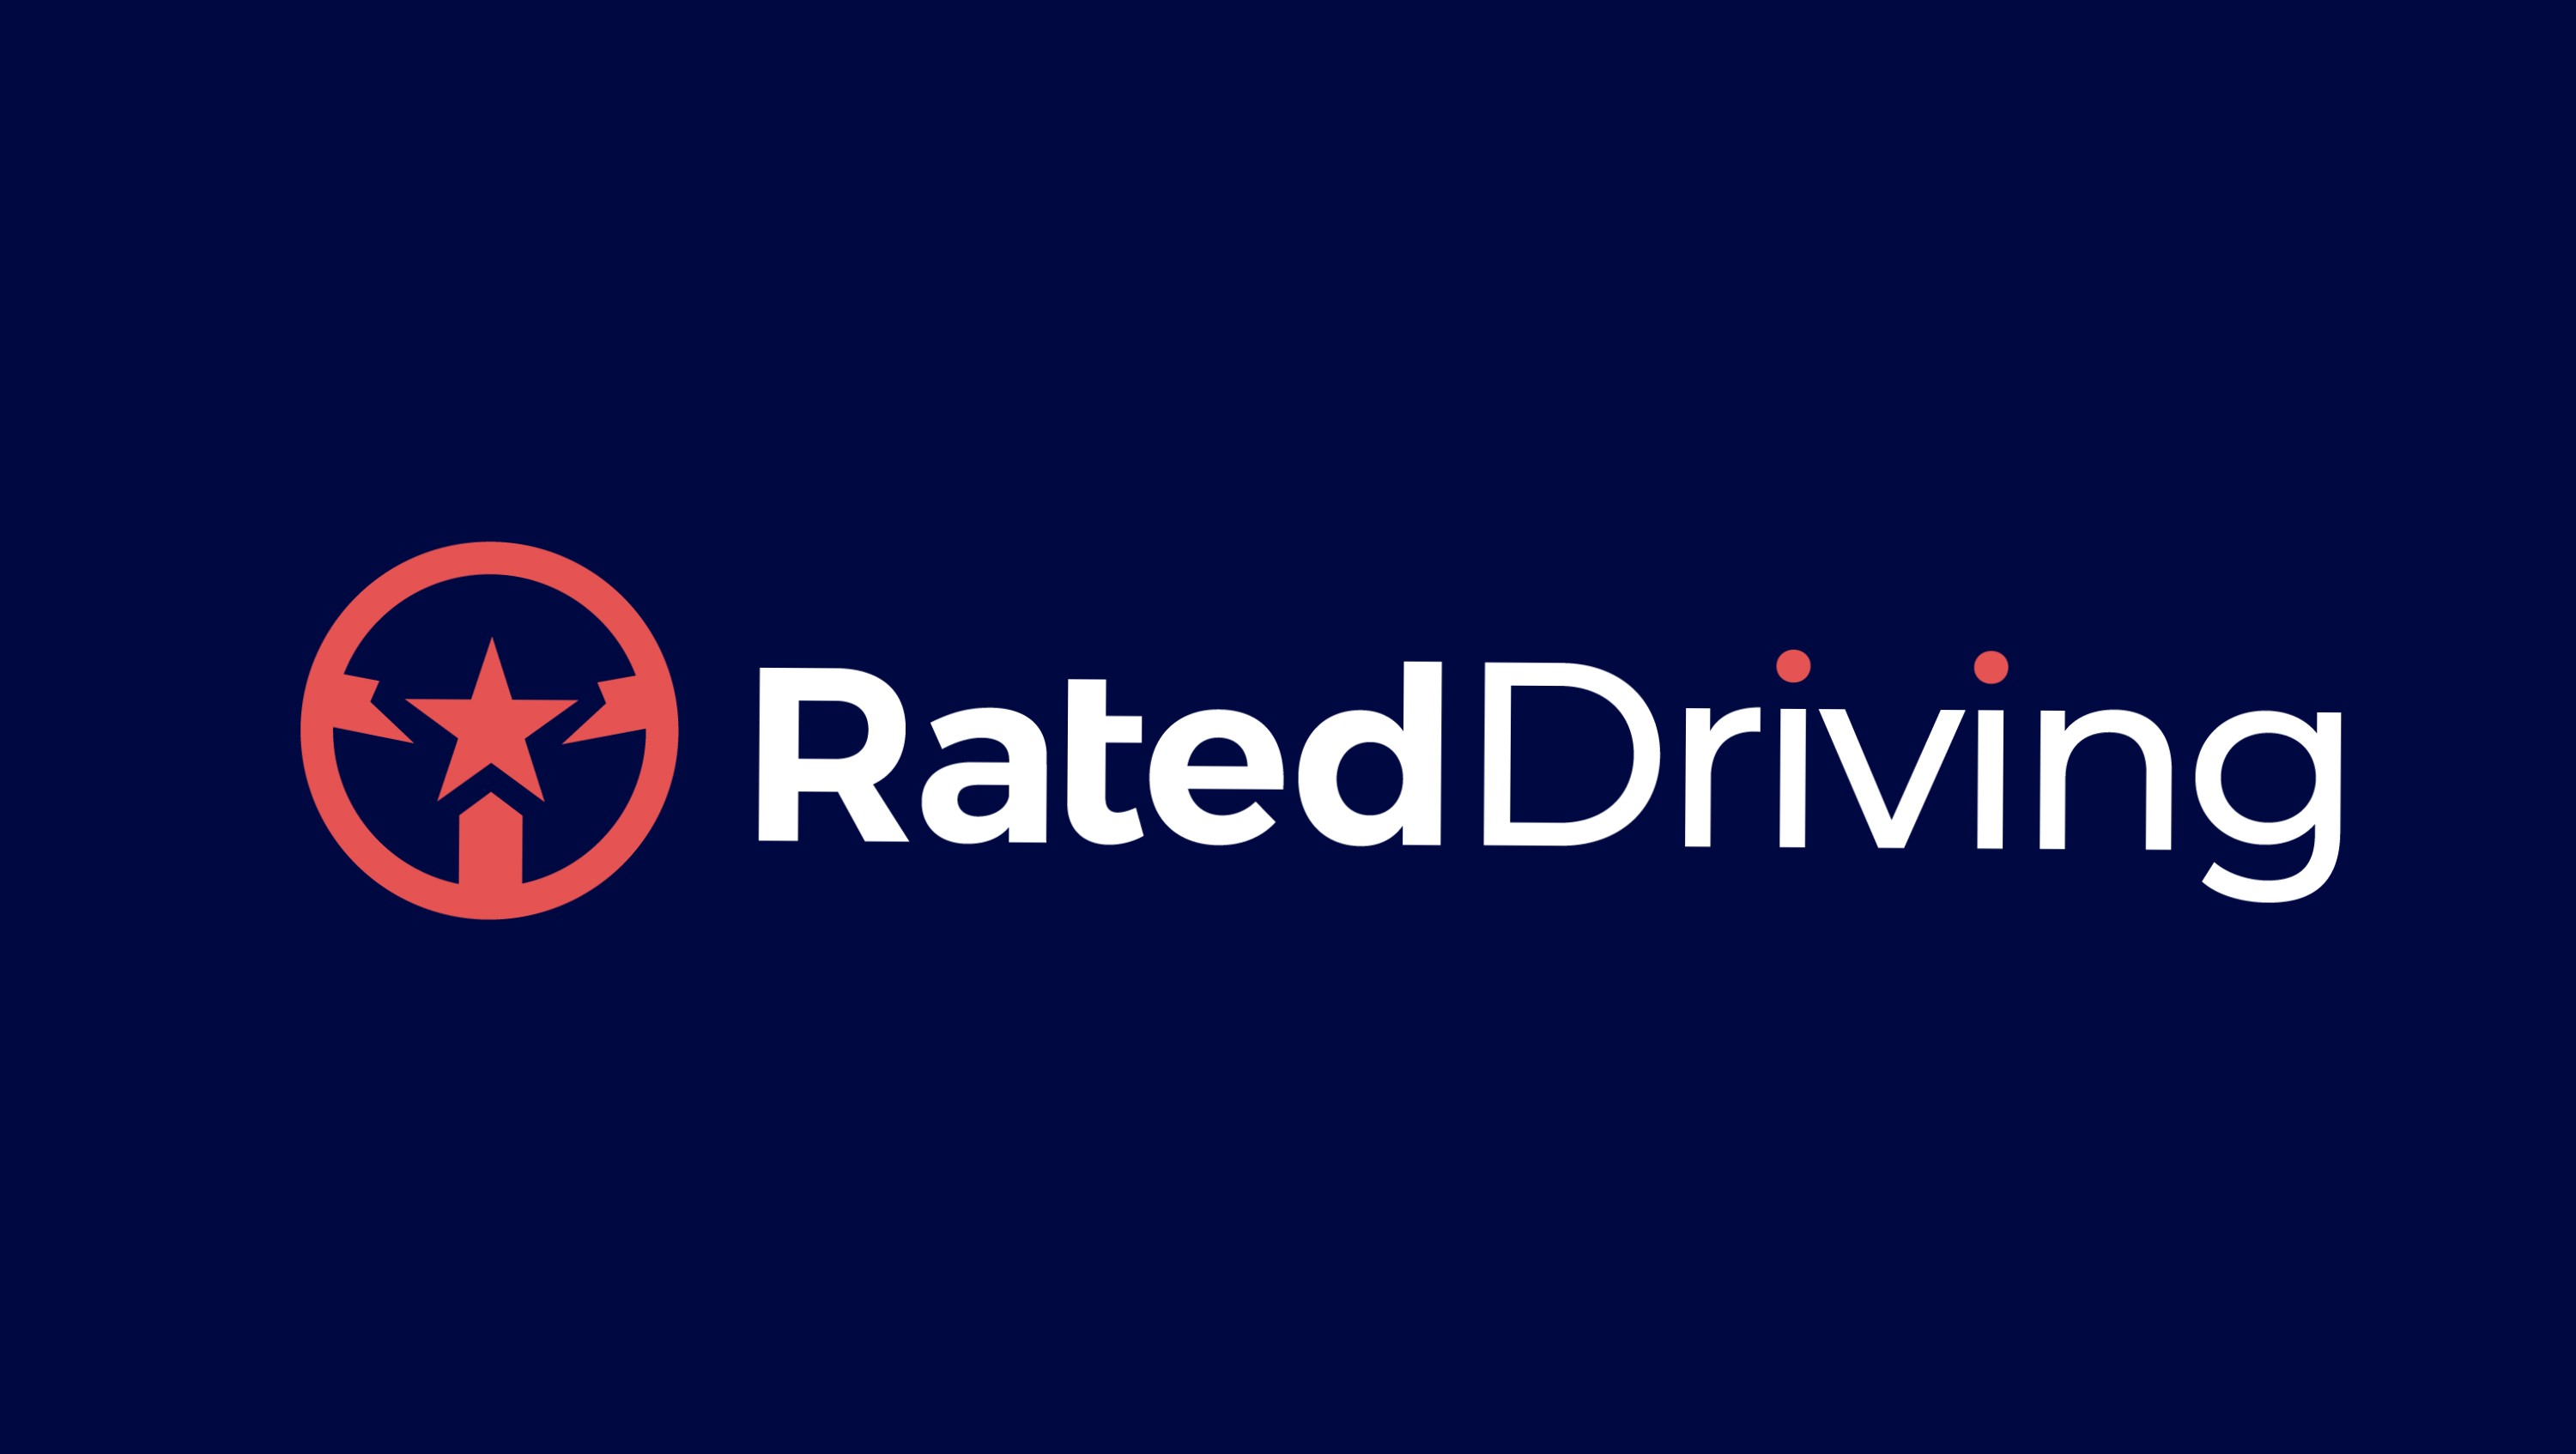 Rated Driving